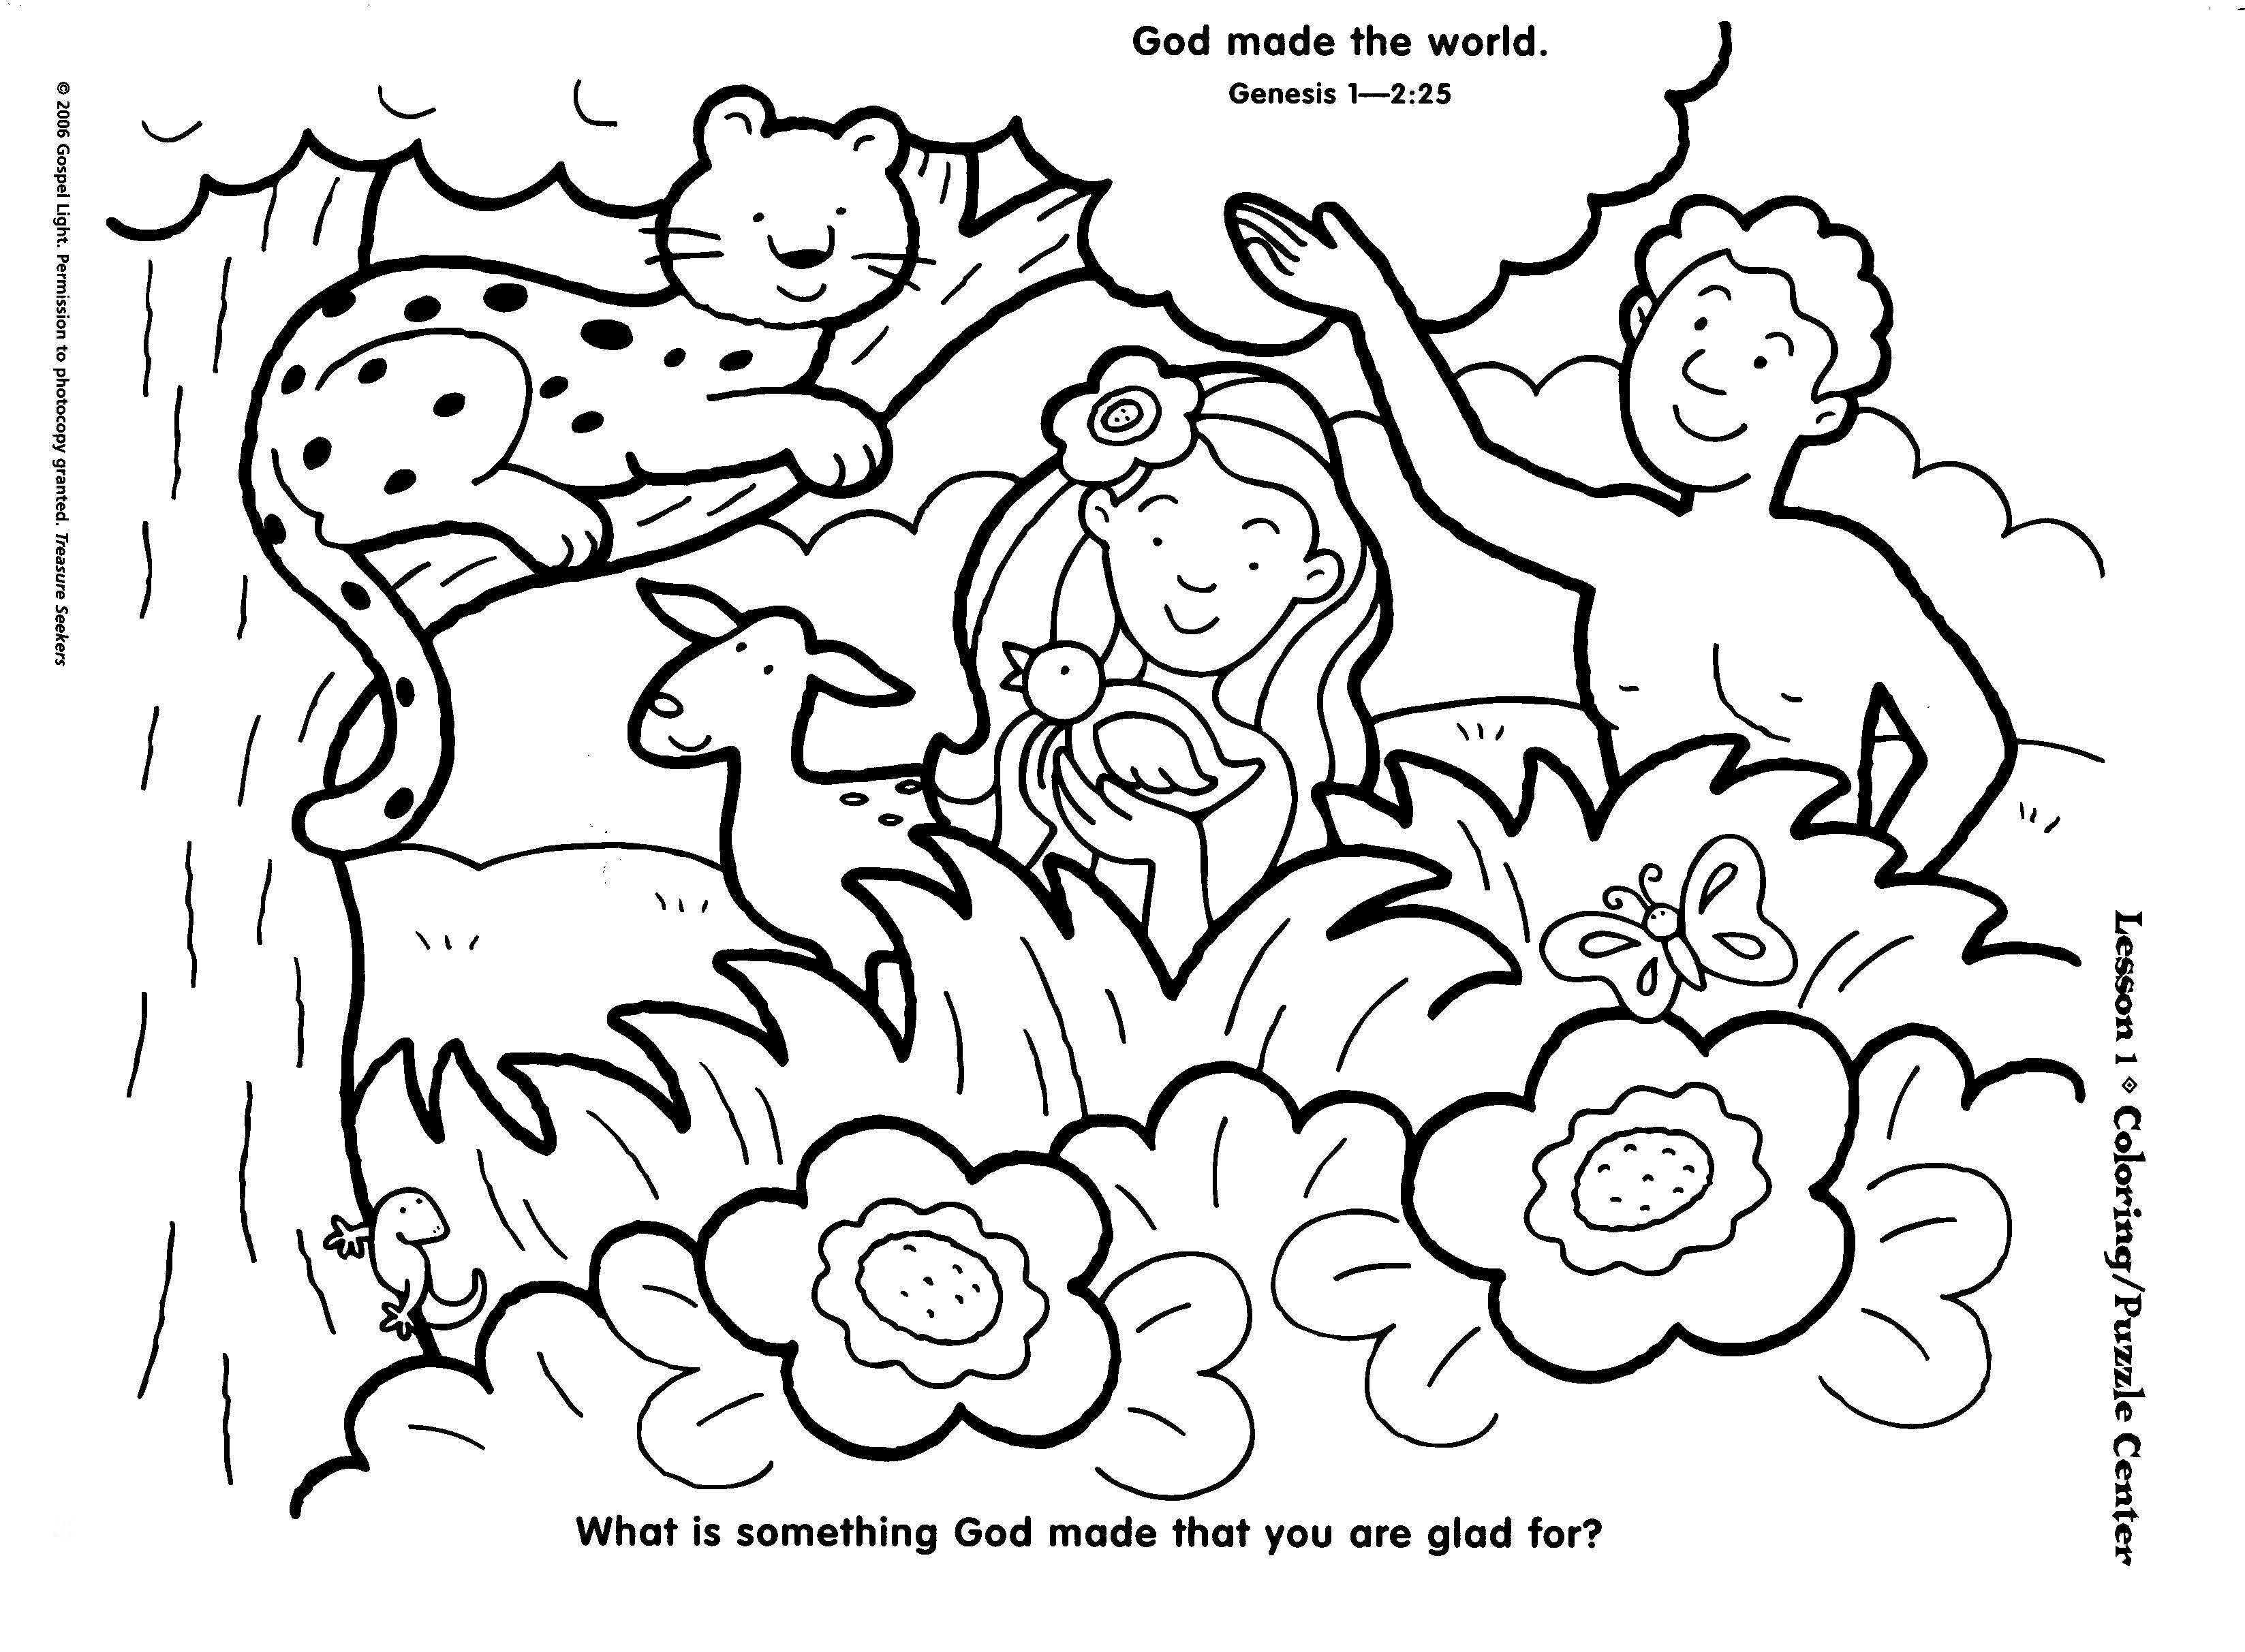 7 days of creation coloring pages free creation coloring pages kidsuki days pages creation free 7 coloring of